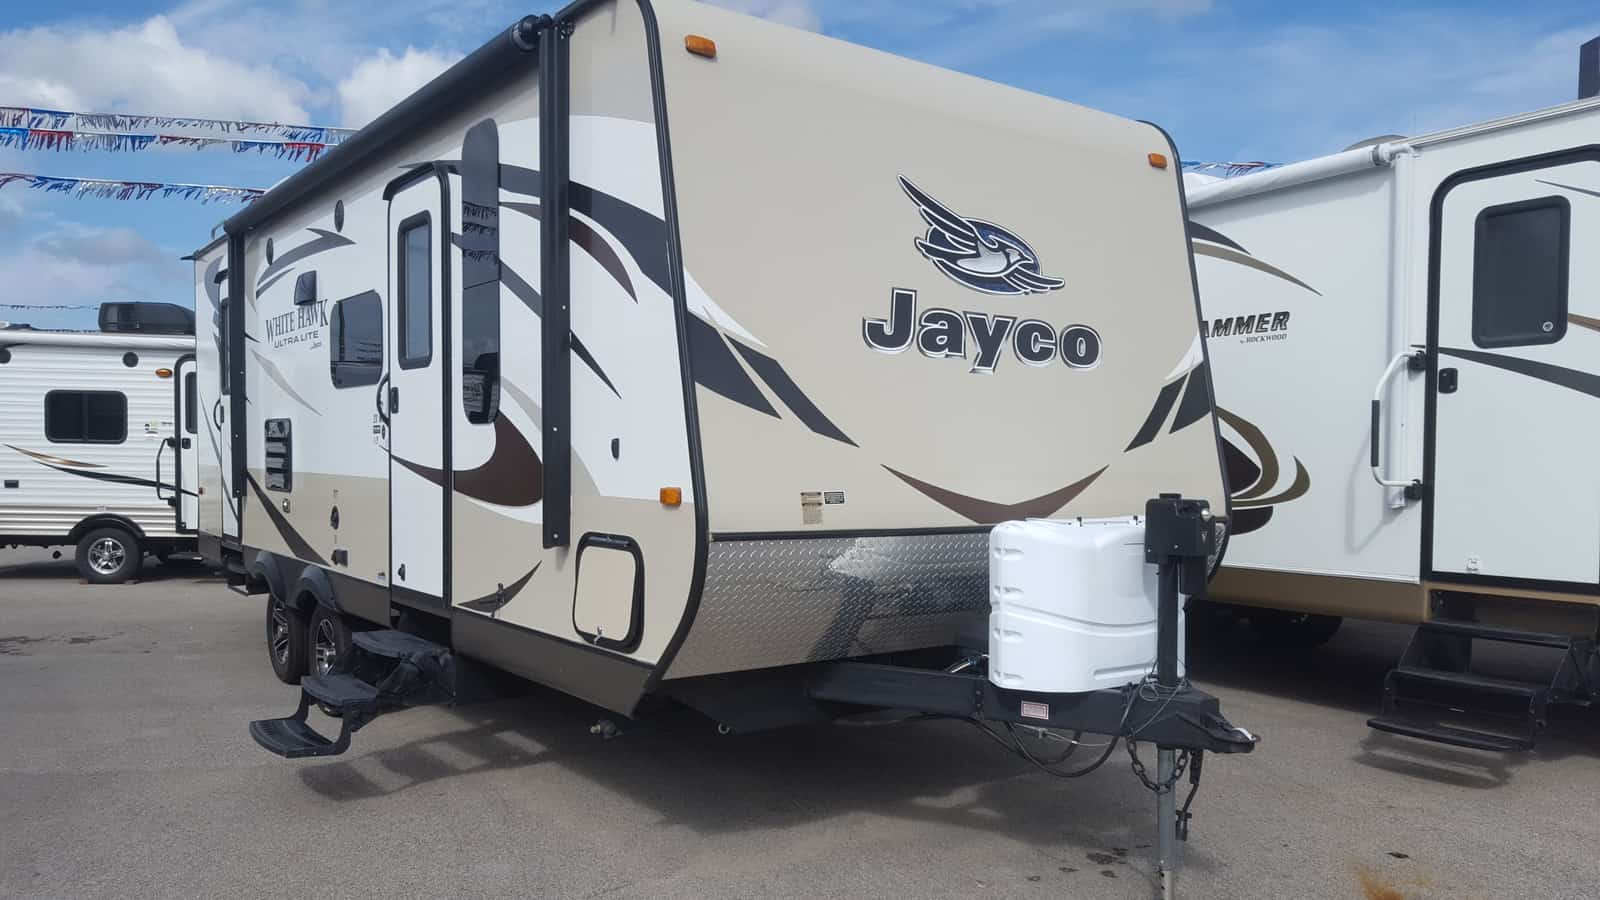 USED 2015 Jayco WHITE HAWK 23MBH - American RV